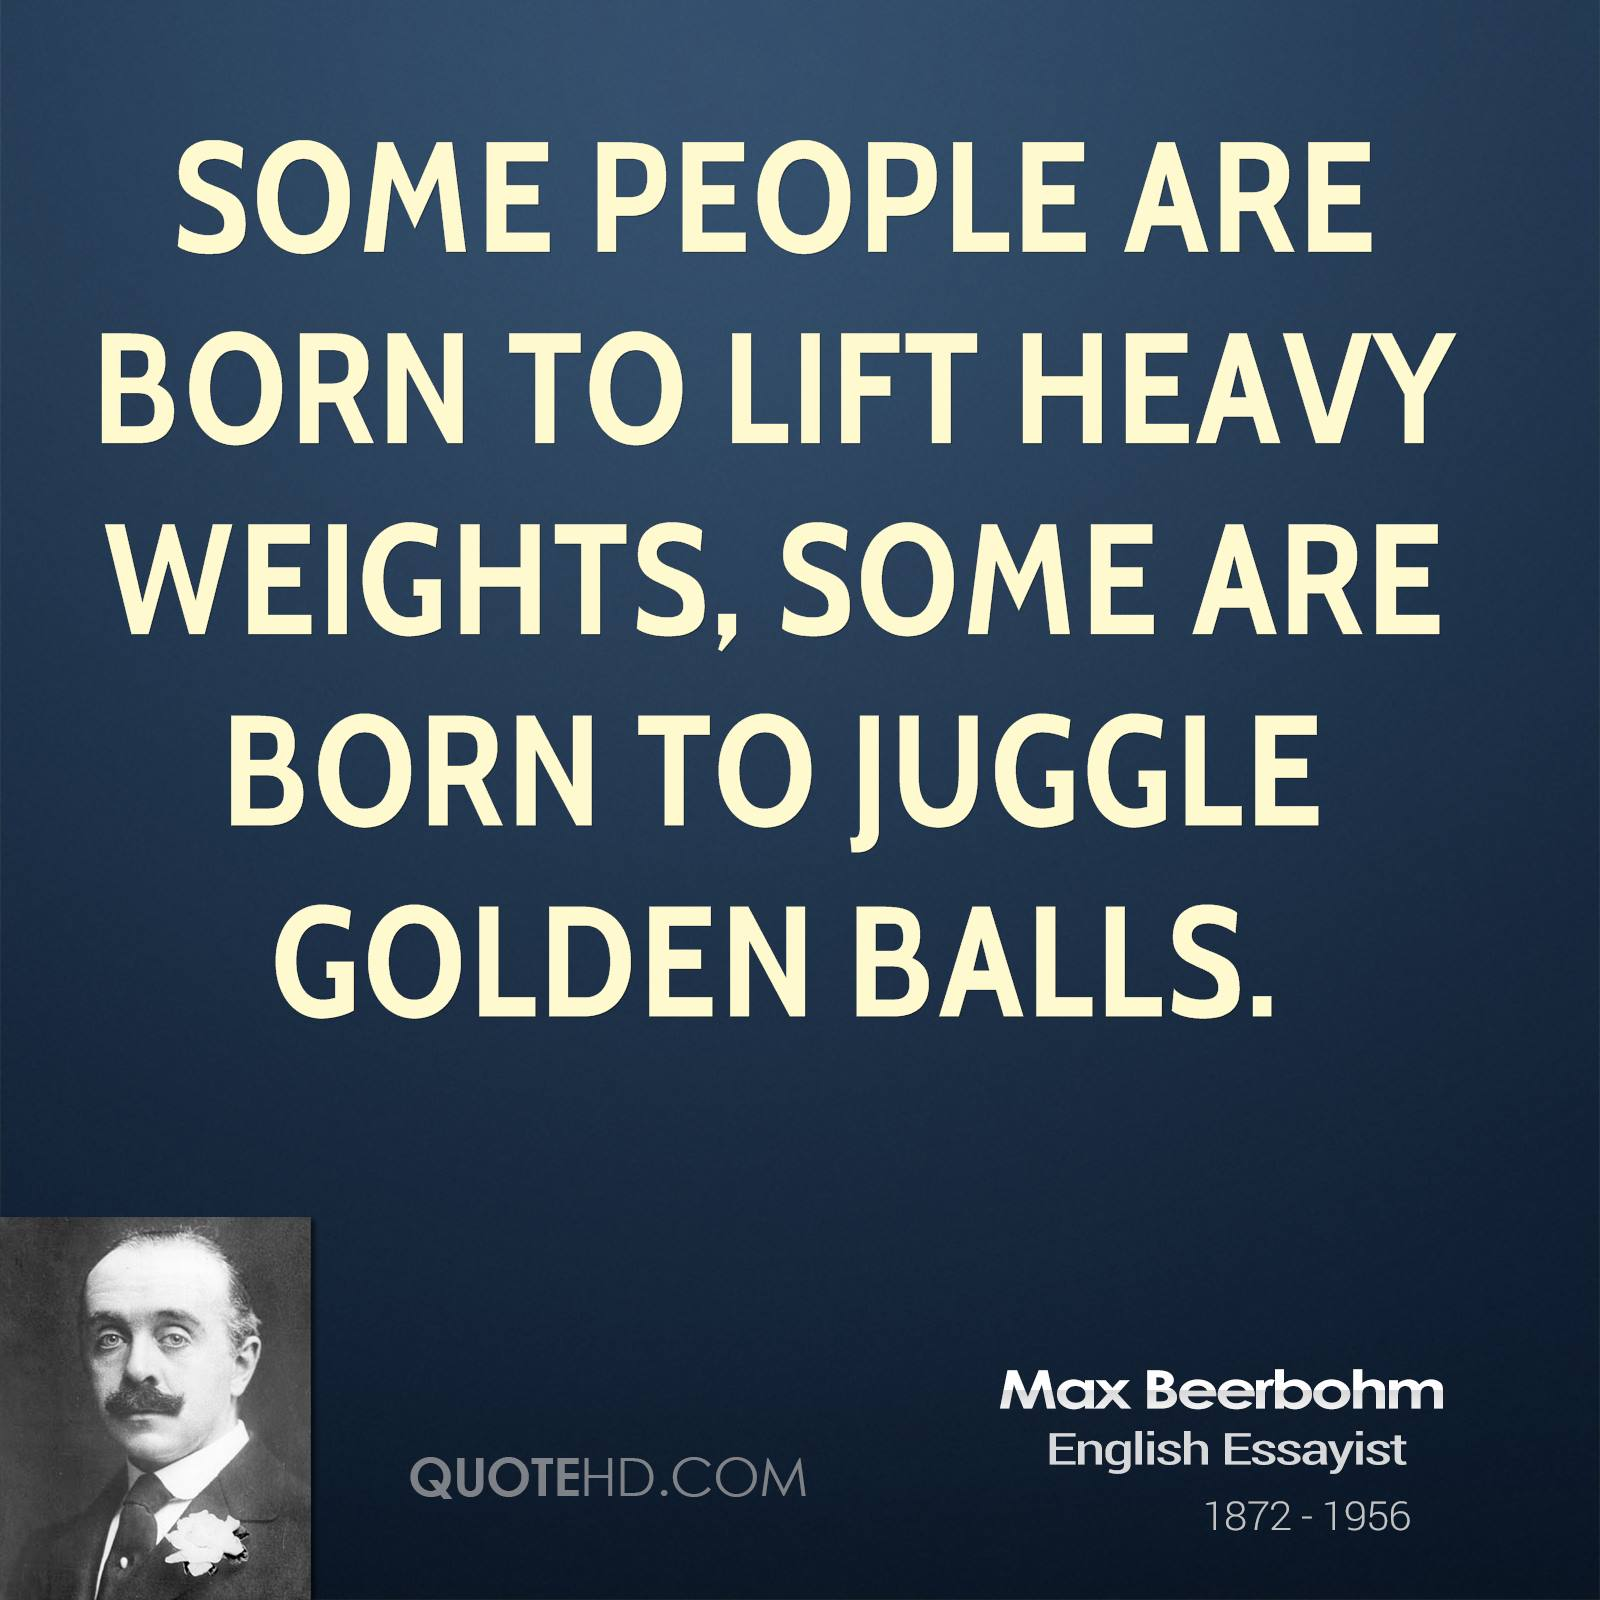 Some people are born to lift heavy weights, some are born to juggle golden balls.